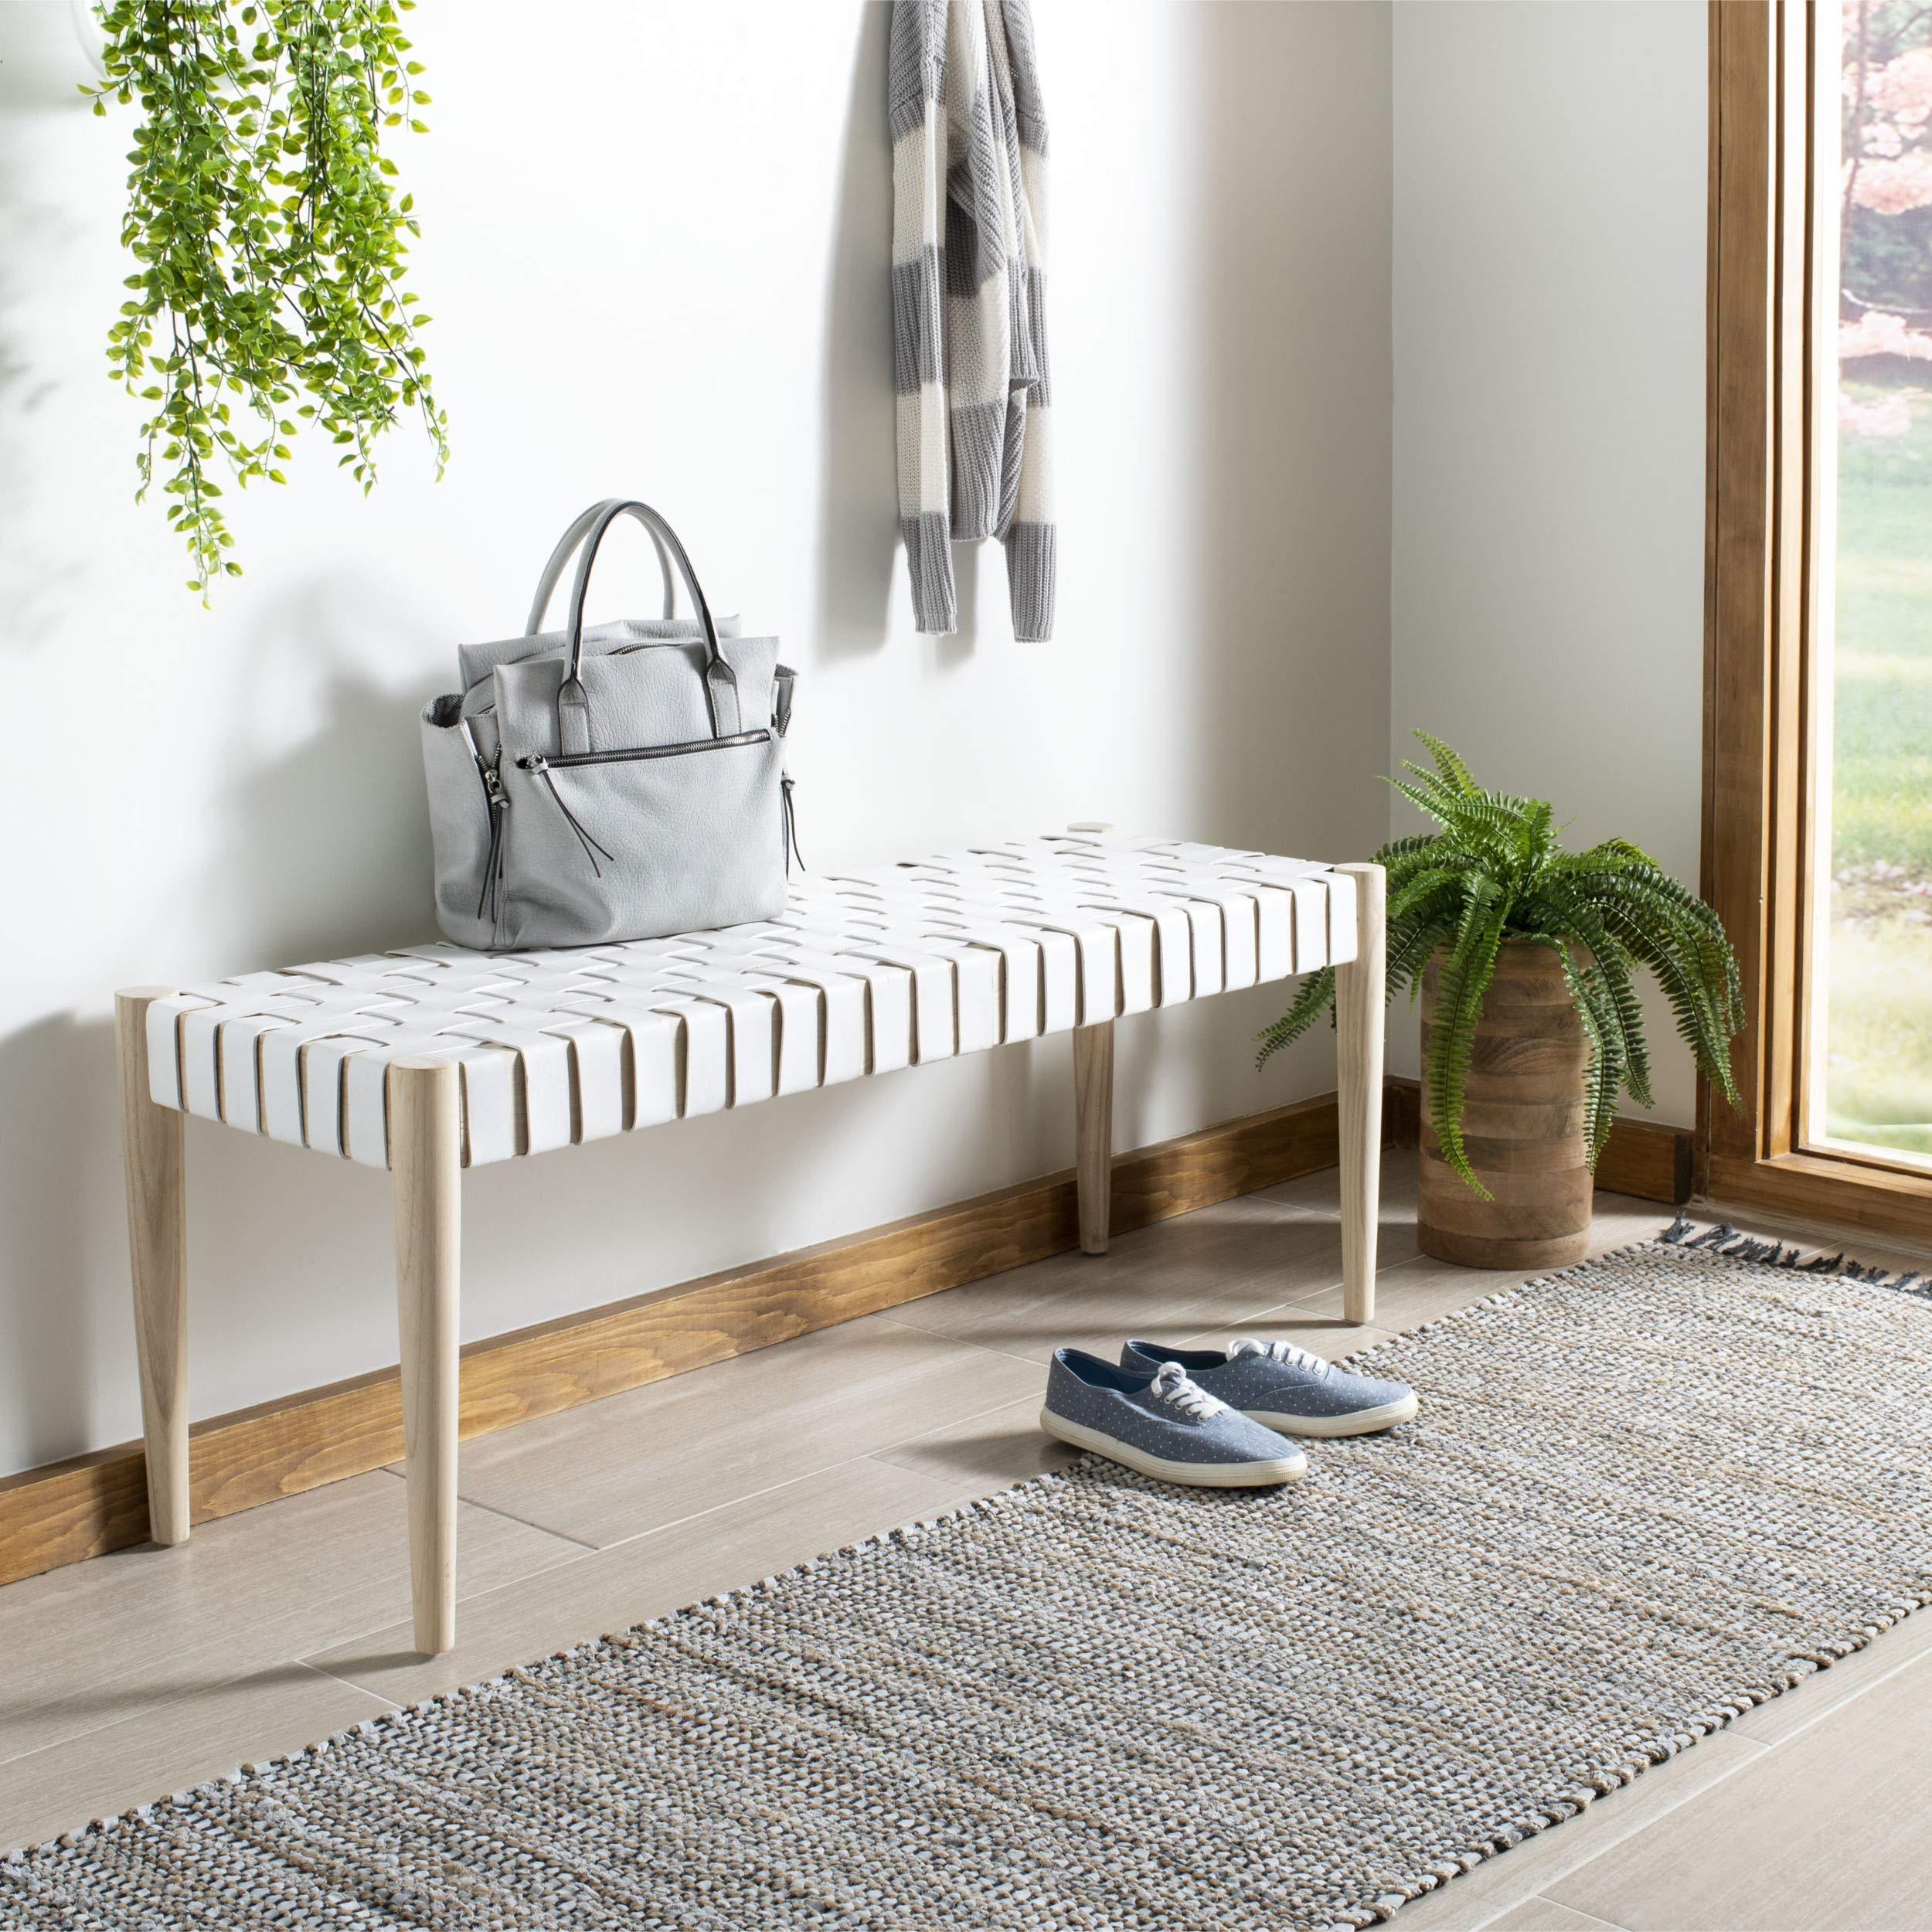 Safavieh BCH1001B Home Collection Amalia Bench, White/Natural